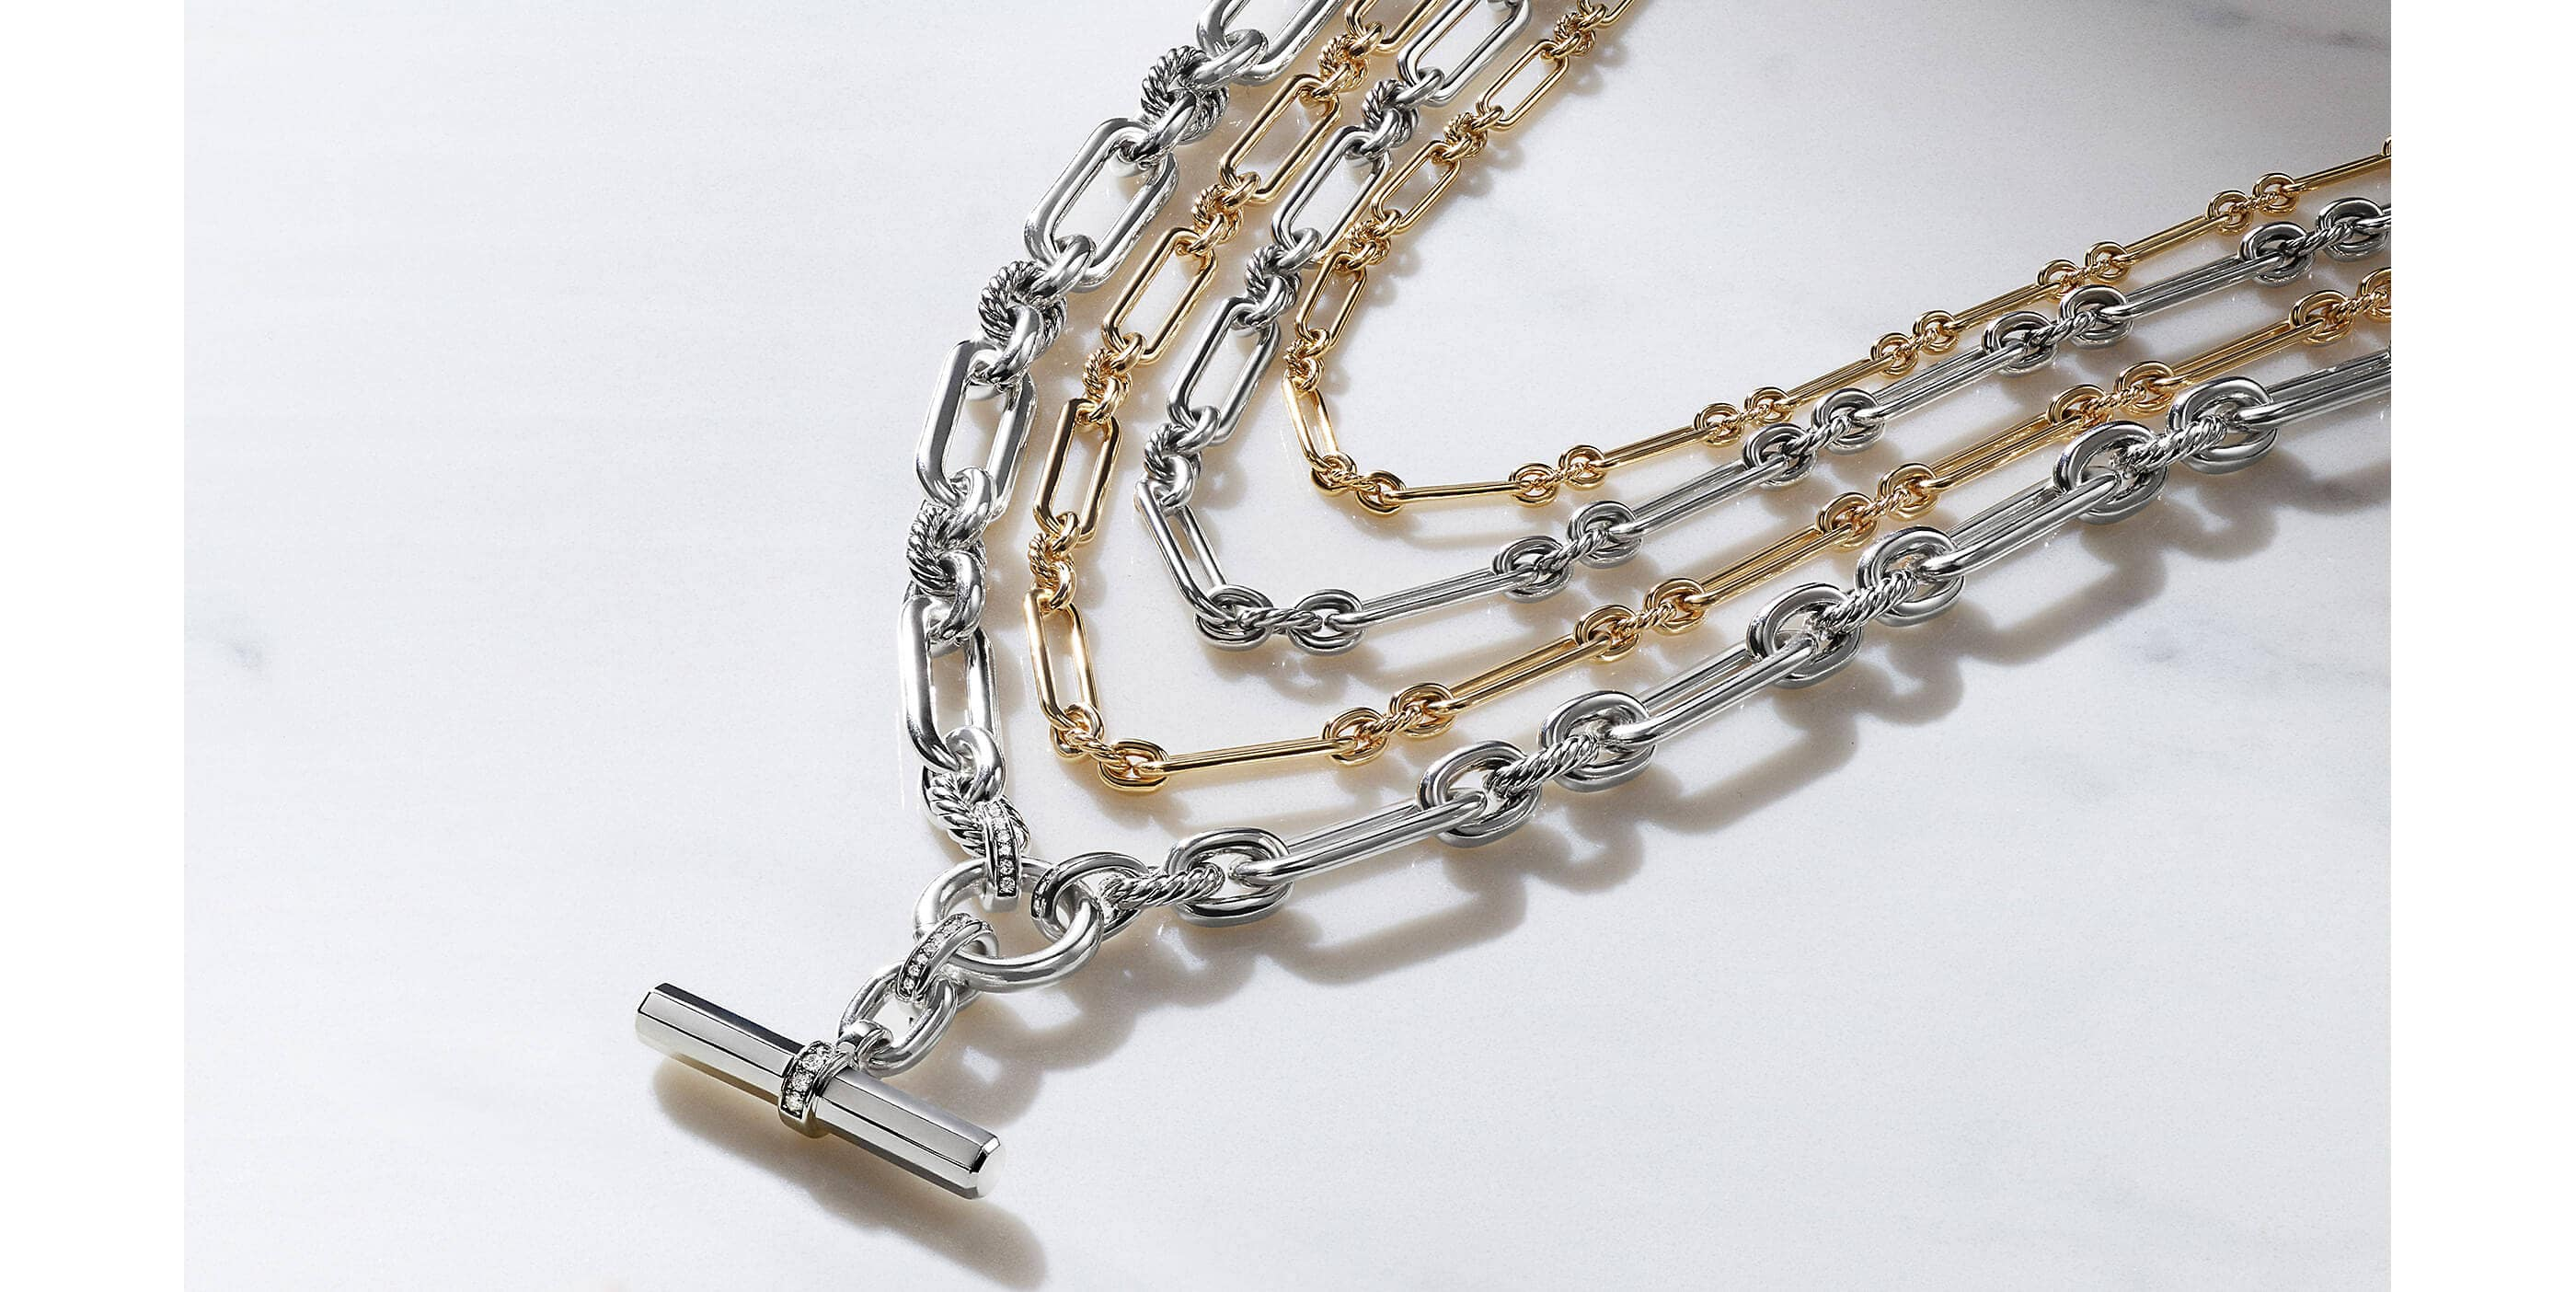 A color photo shows four David Yurman women's Lexington chain necklaces placed in a row on a marble surface in between a white-and-pink flower on the left and a perfume bottle atop black-and-white postcards on a white saucer on the right. The women's jewelry is crafted from 18K yellow gold or sterling silver with or without pavé diamond accents.